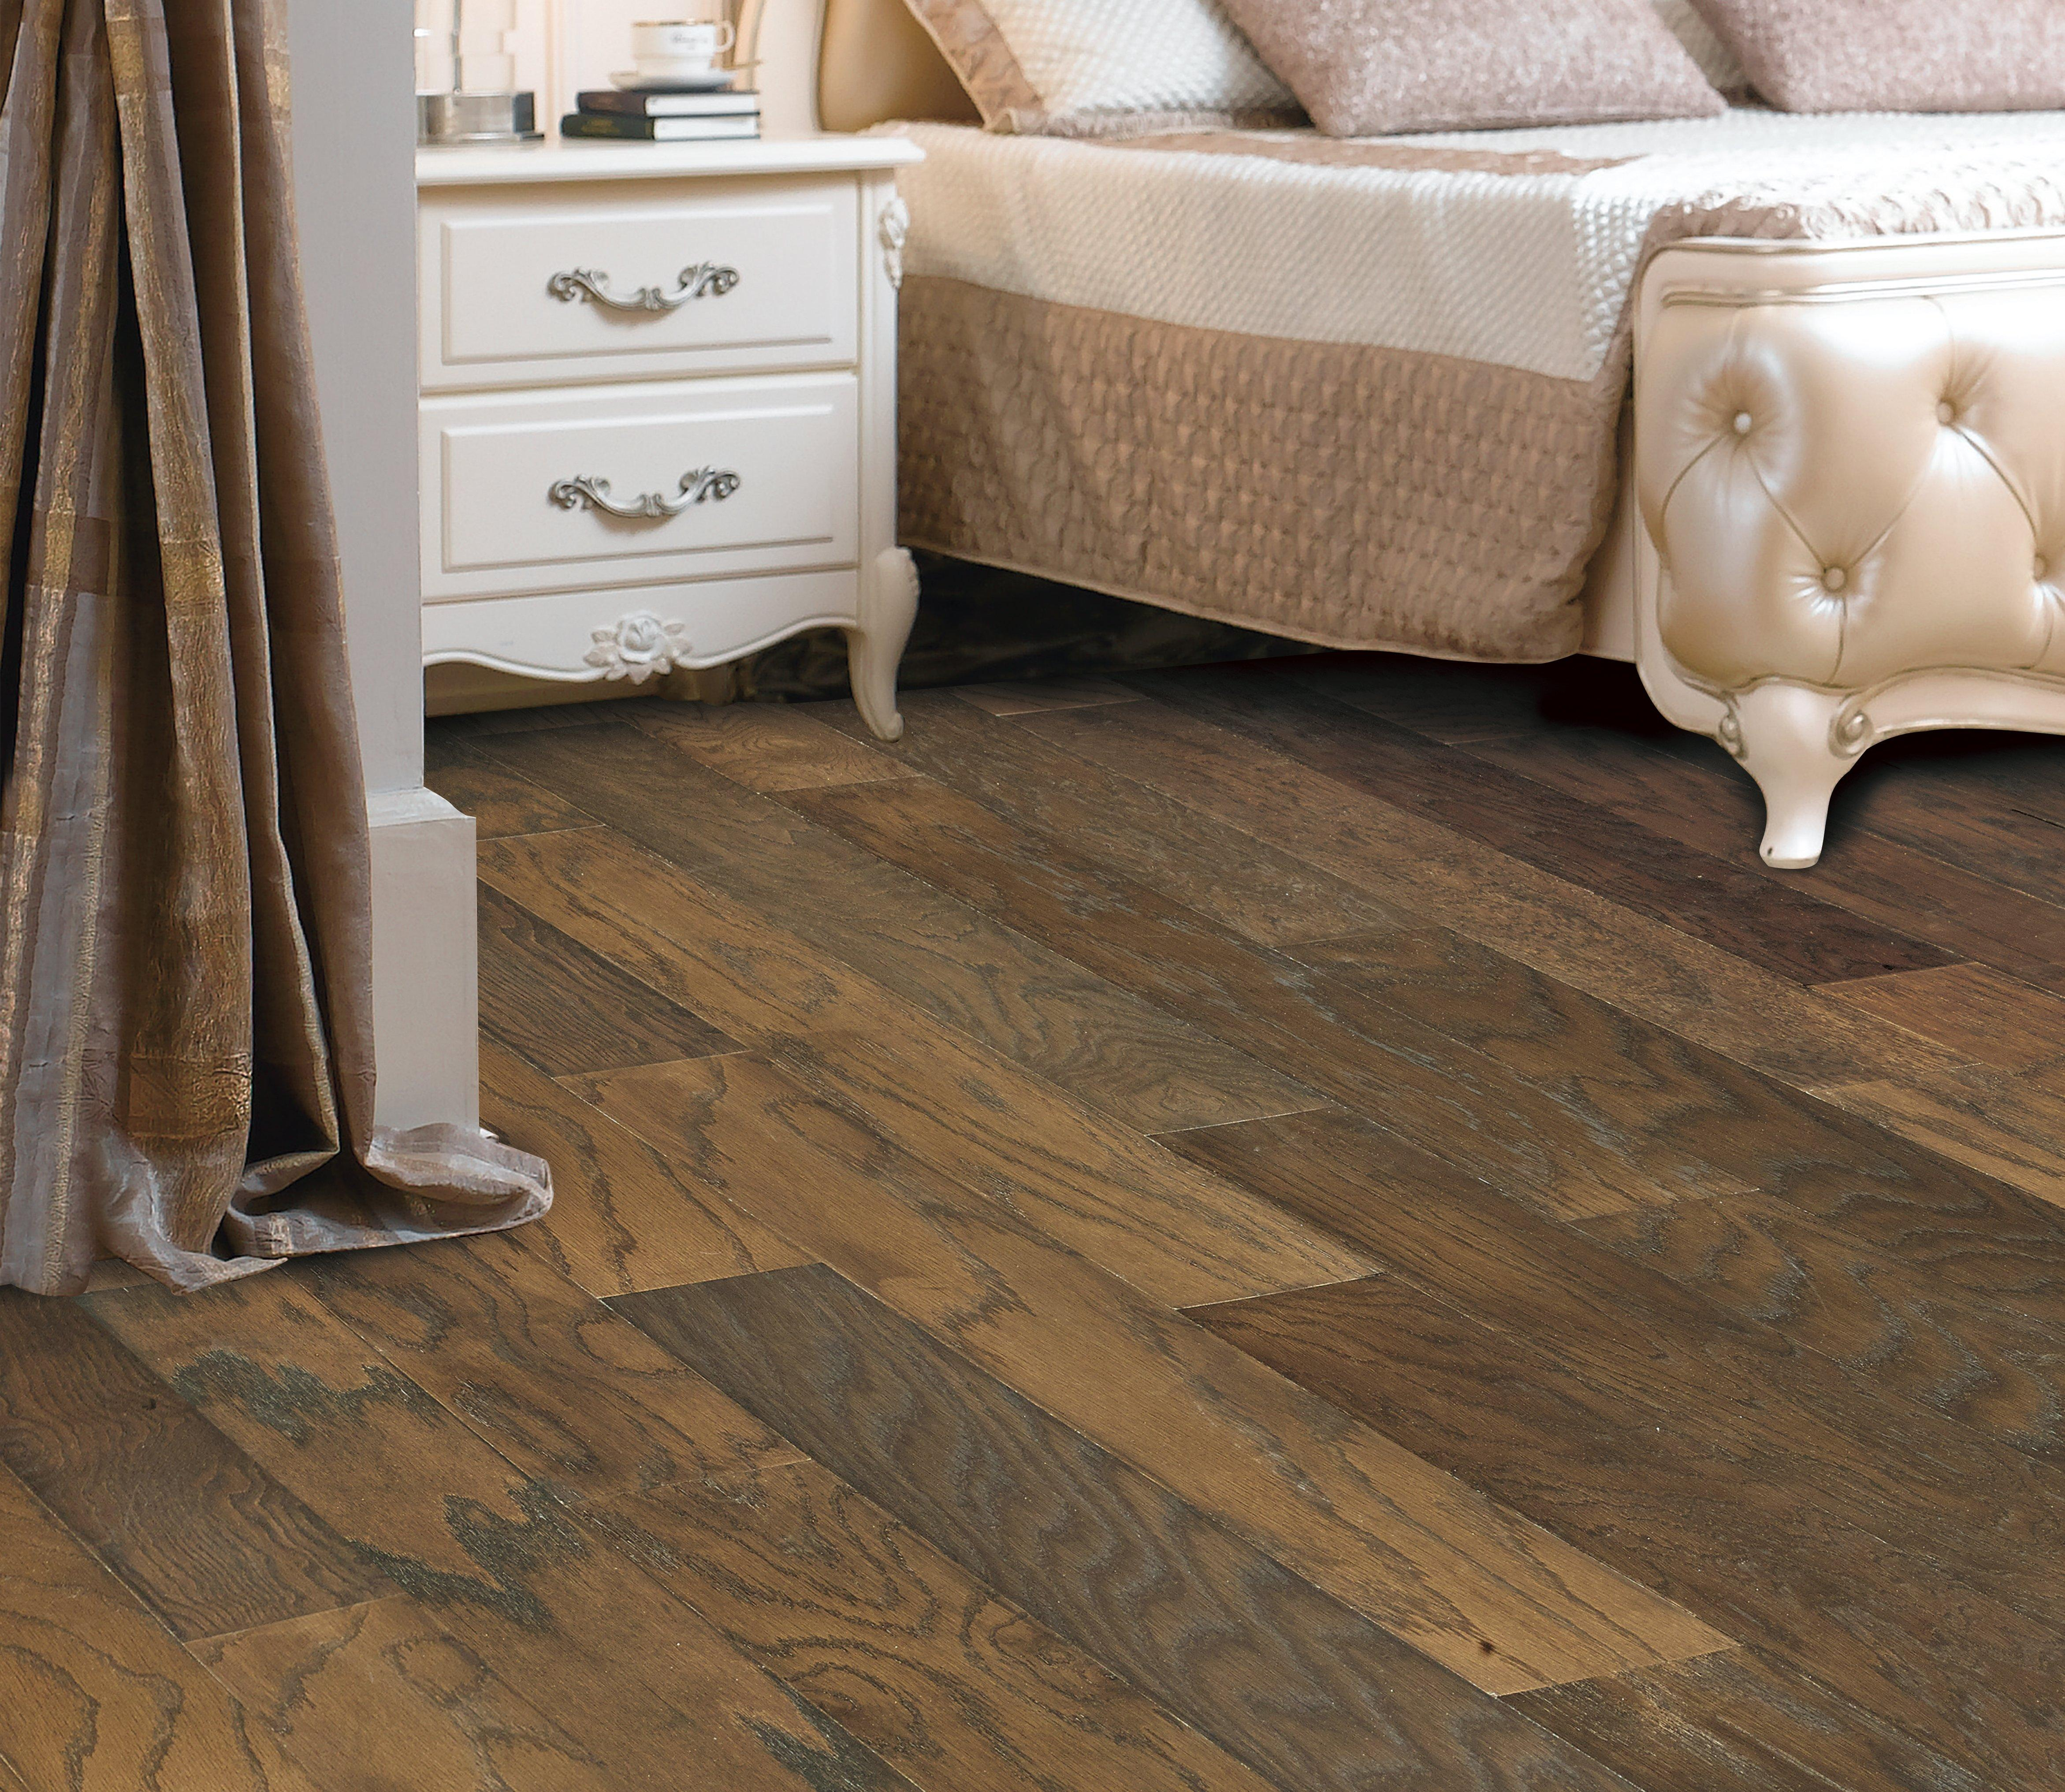 Chestnut Oak Smooth Locking Engineered Hardwood   3/8in. X 5in.   100126416  | Floor And Decor